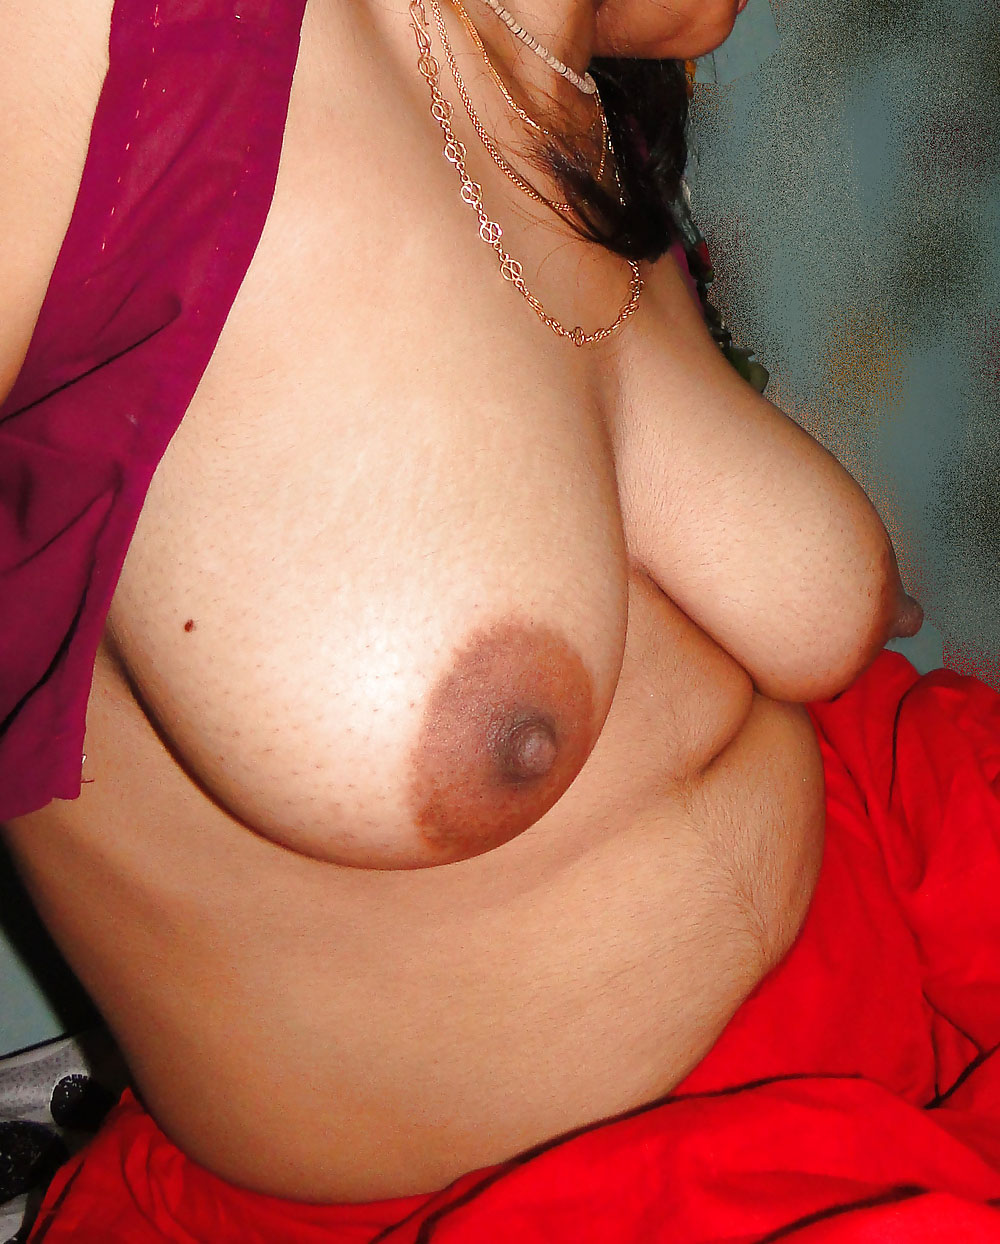 image Sexy big boobs bengali muslim hijabi heels